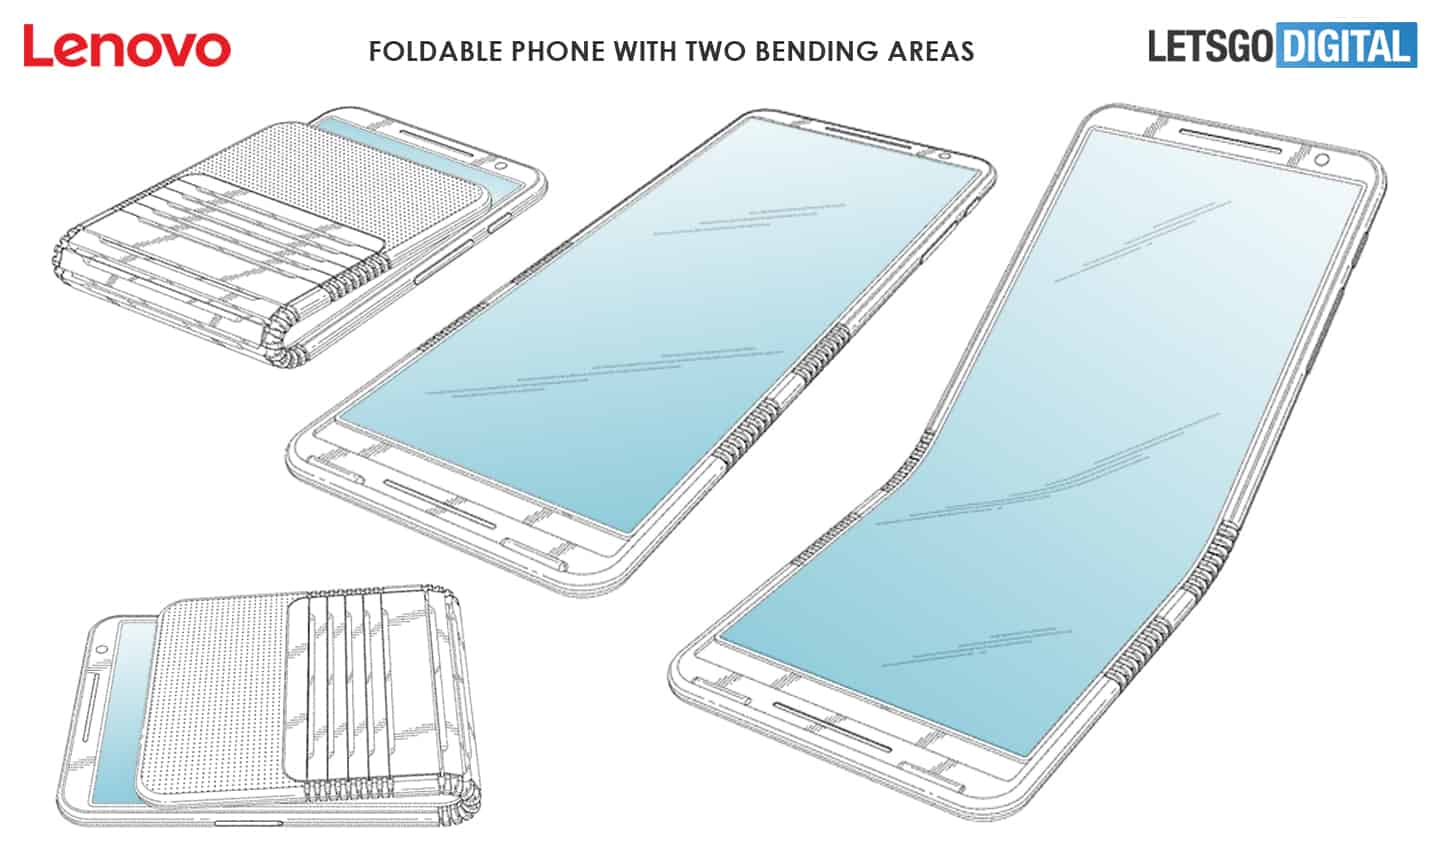 Lenovo foldable smartphone with two hinges patent 2